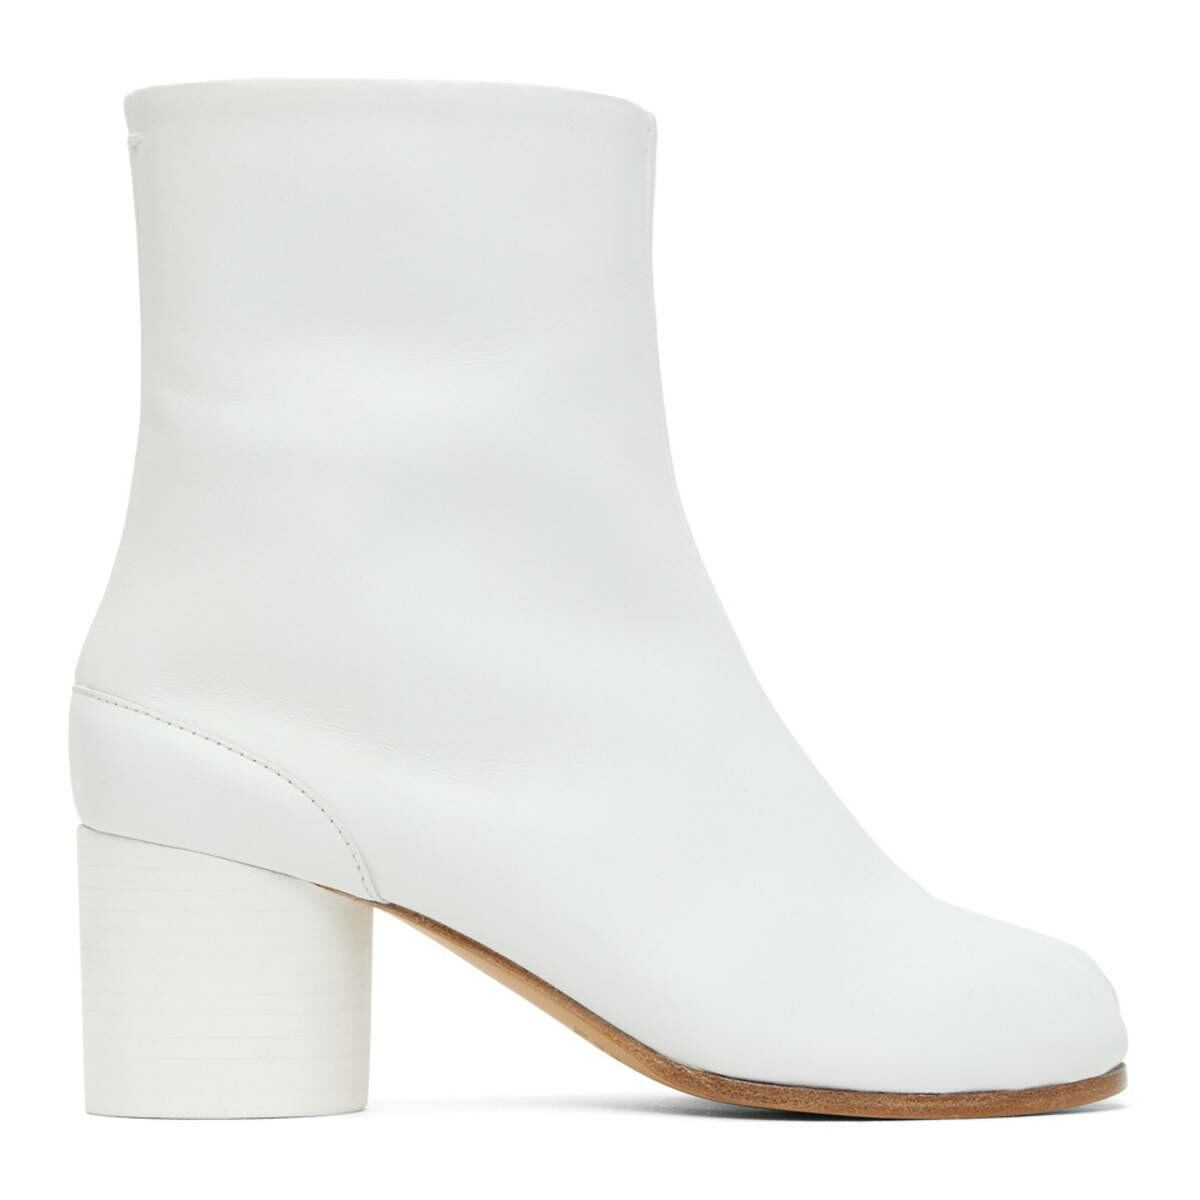 Maison Margiela White Mid Heel Tabi Boots Ssense USA WOMEN Women SHOES Womens ANKLE BOOTS